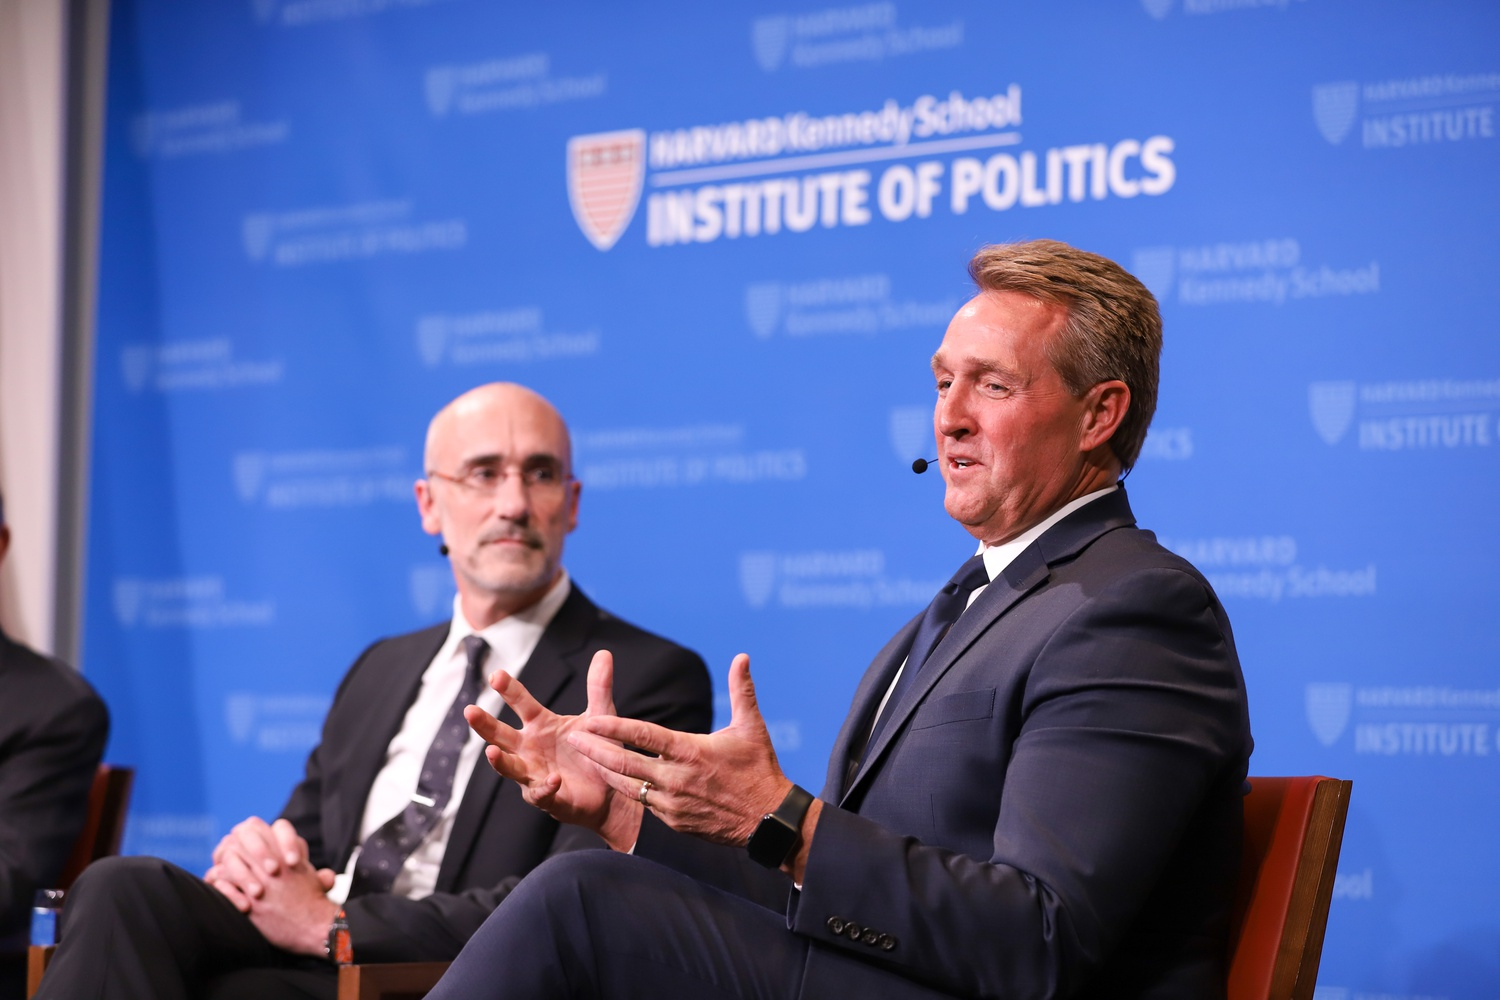 U.S. Senator Jeff Flake speaks with George F. Will, Arthur Brooks, and Alice Stewart to discuss the role of conservatism and its new connotations in today's politics.